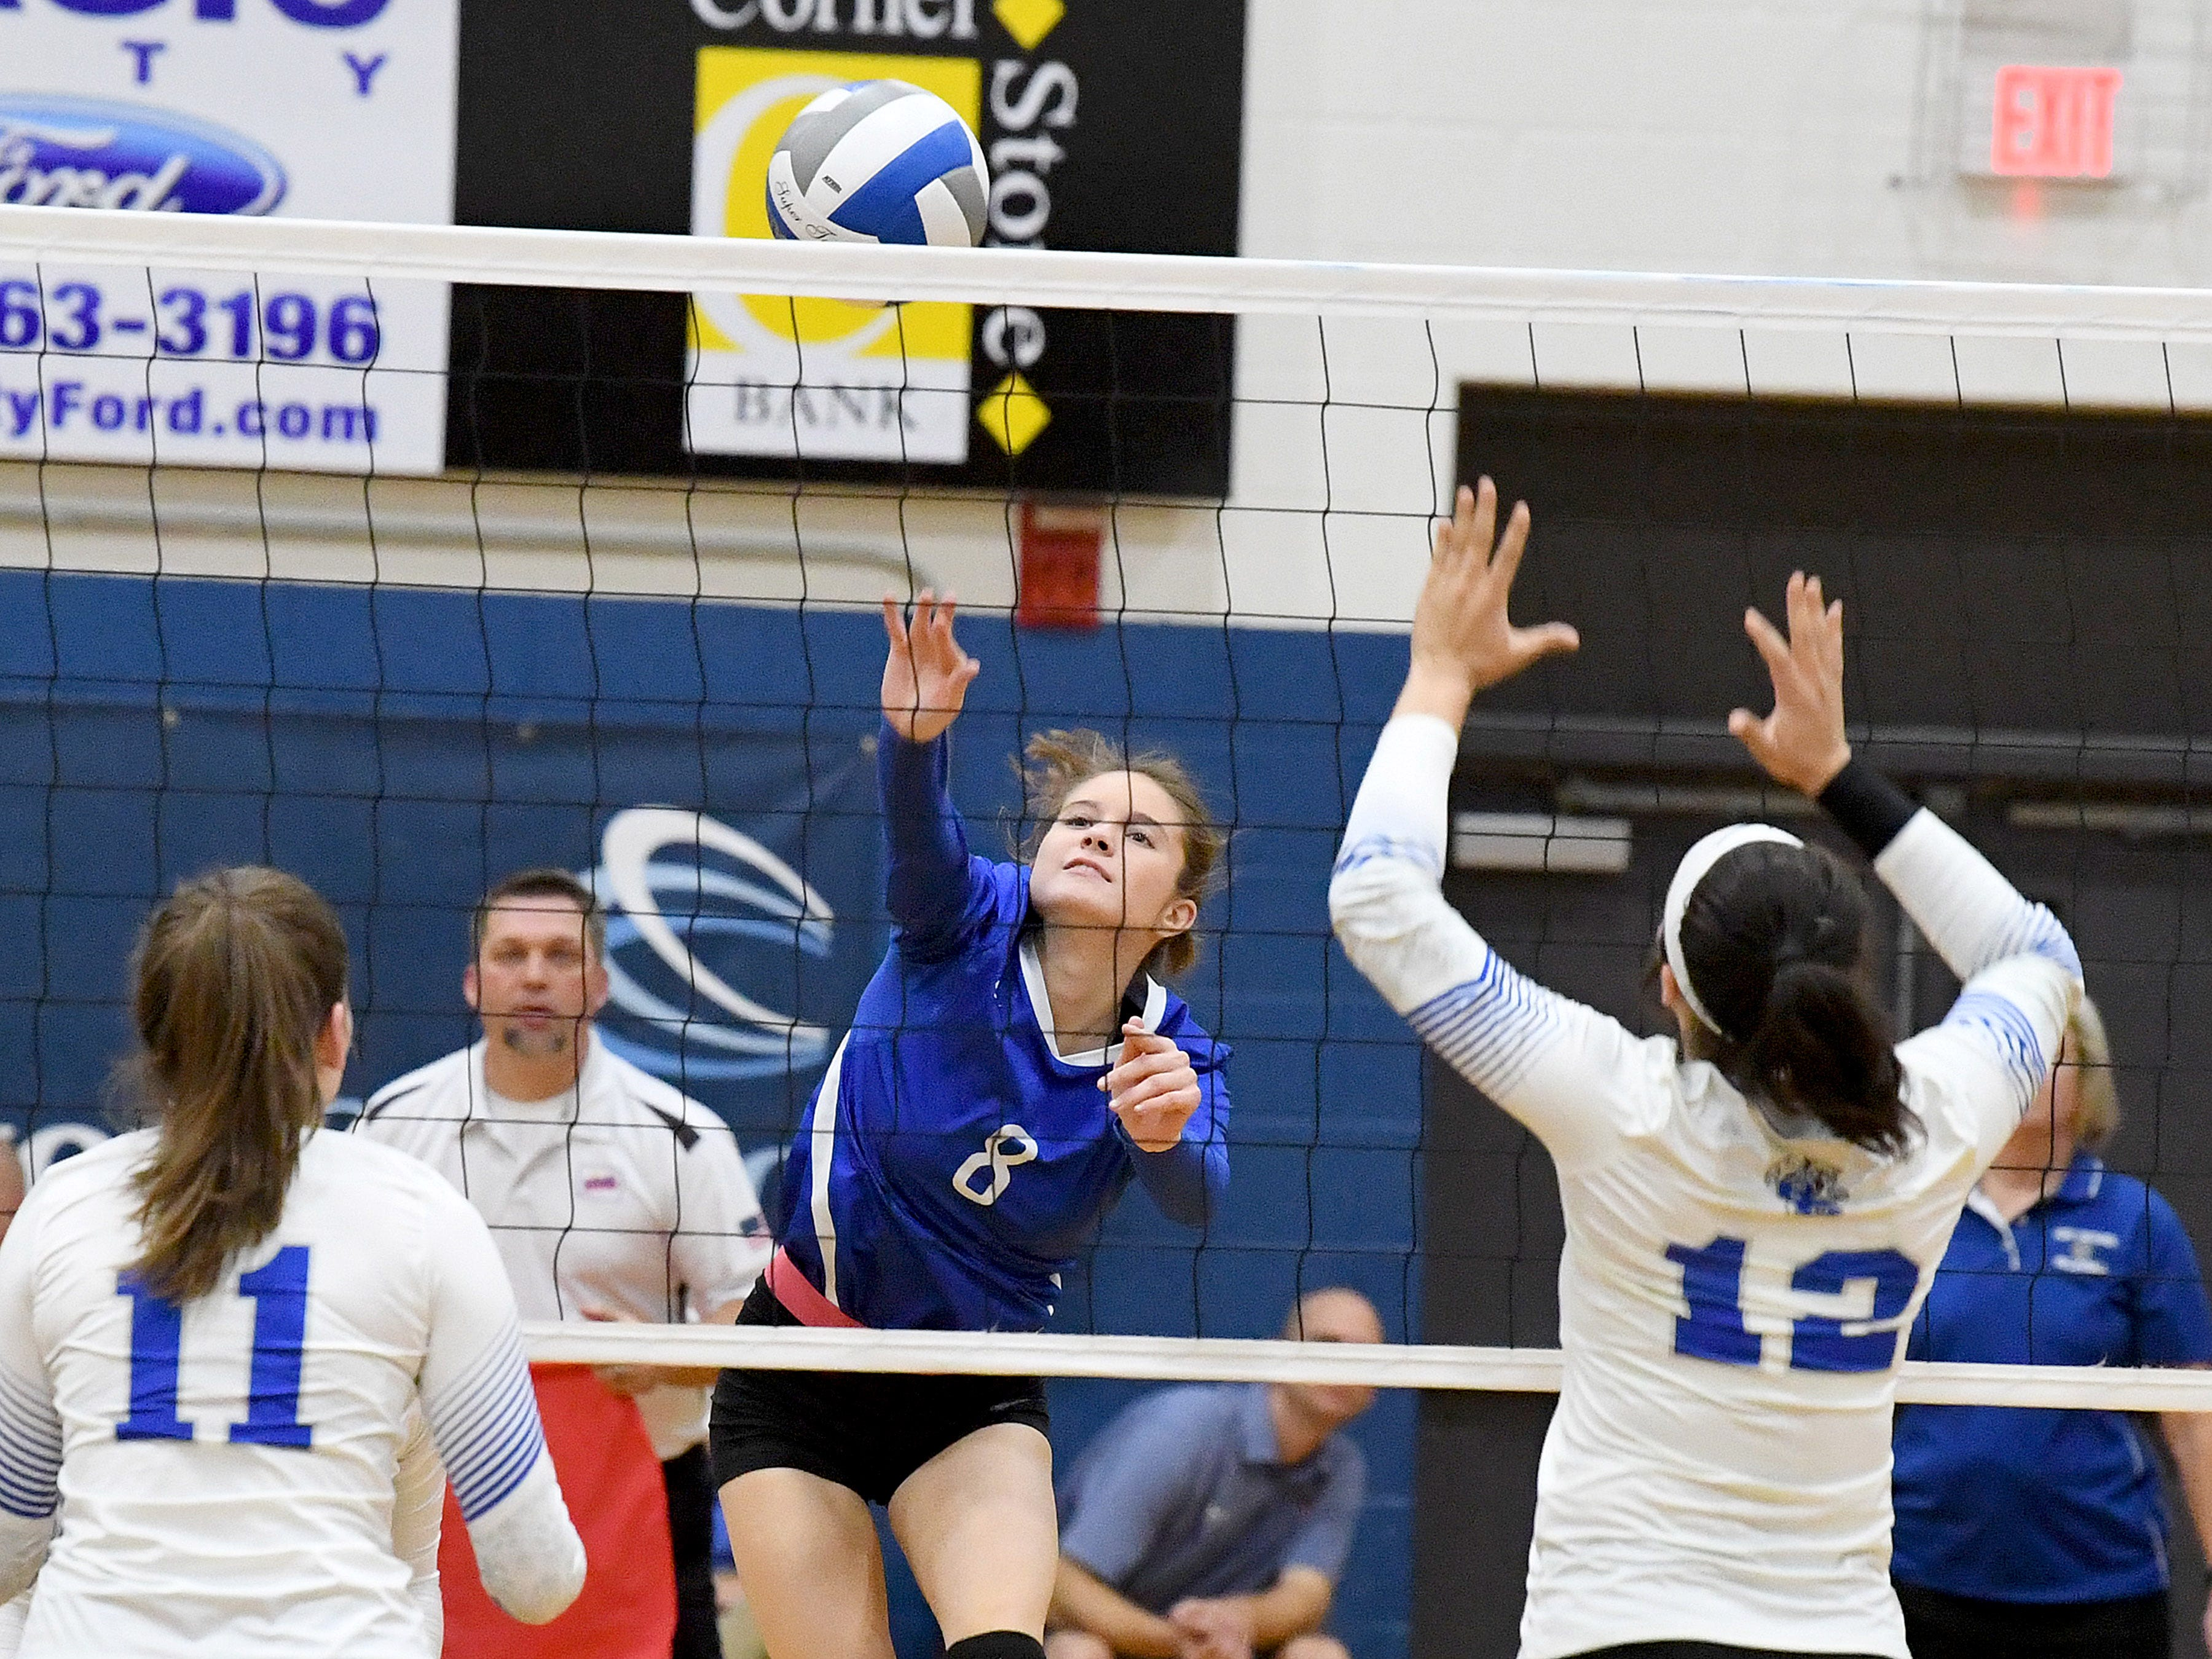 Fort Defiance's Emma Lawson sends the ball back across the net during a Region 3C semifinal match played in Lexington on Monday, Nov. 5, 2018.